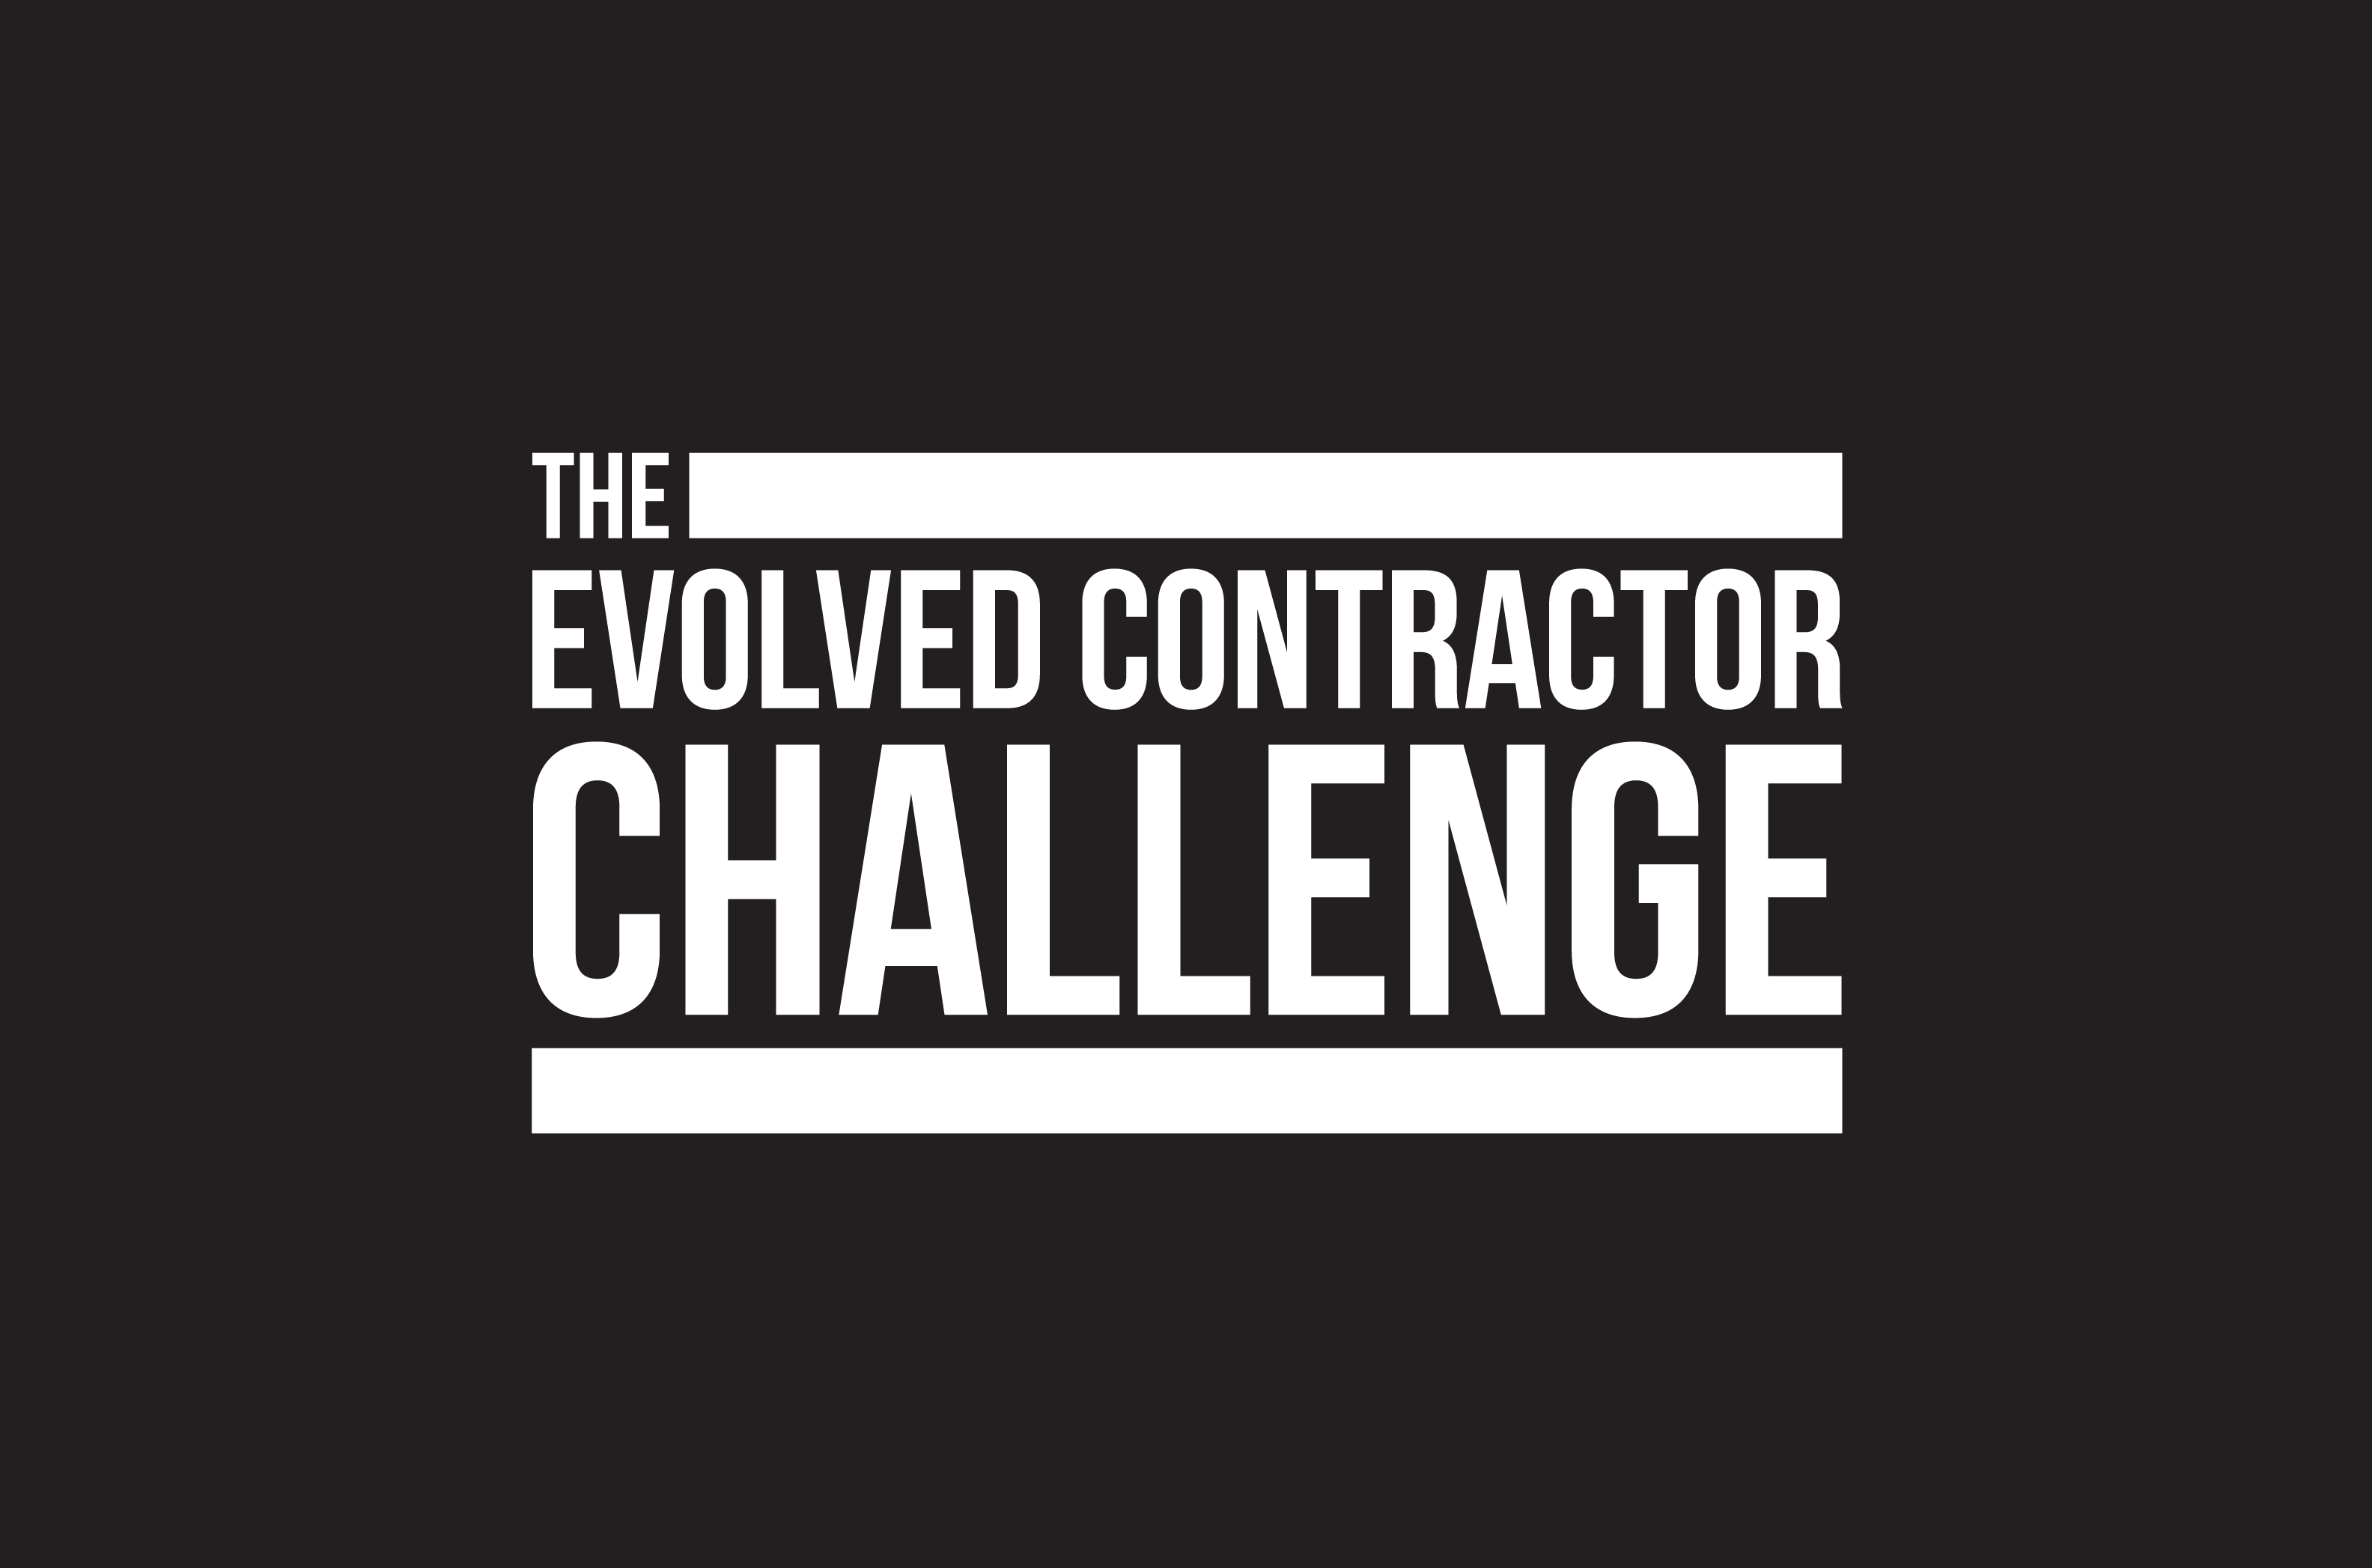 The Evolved Contractor Challenge logo